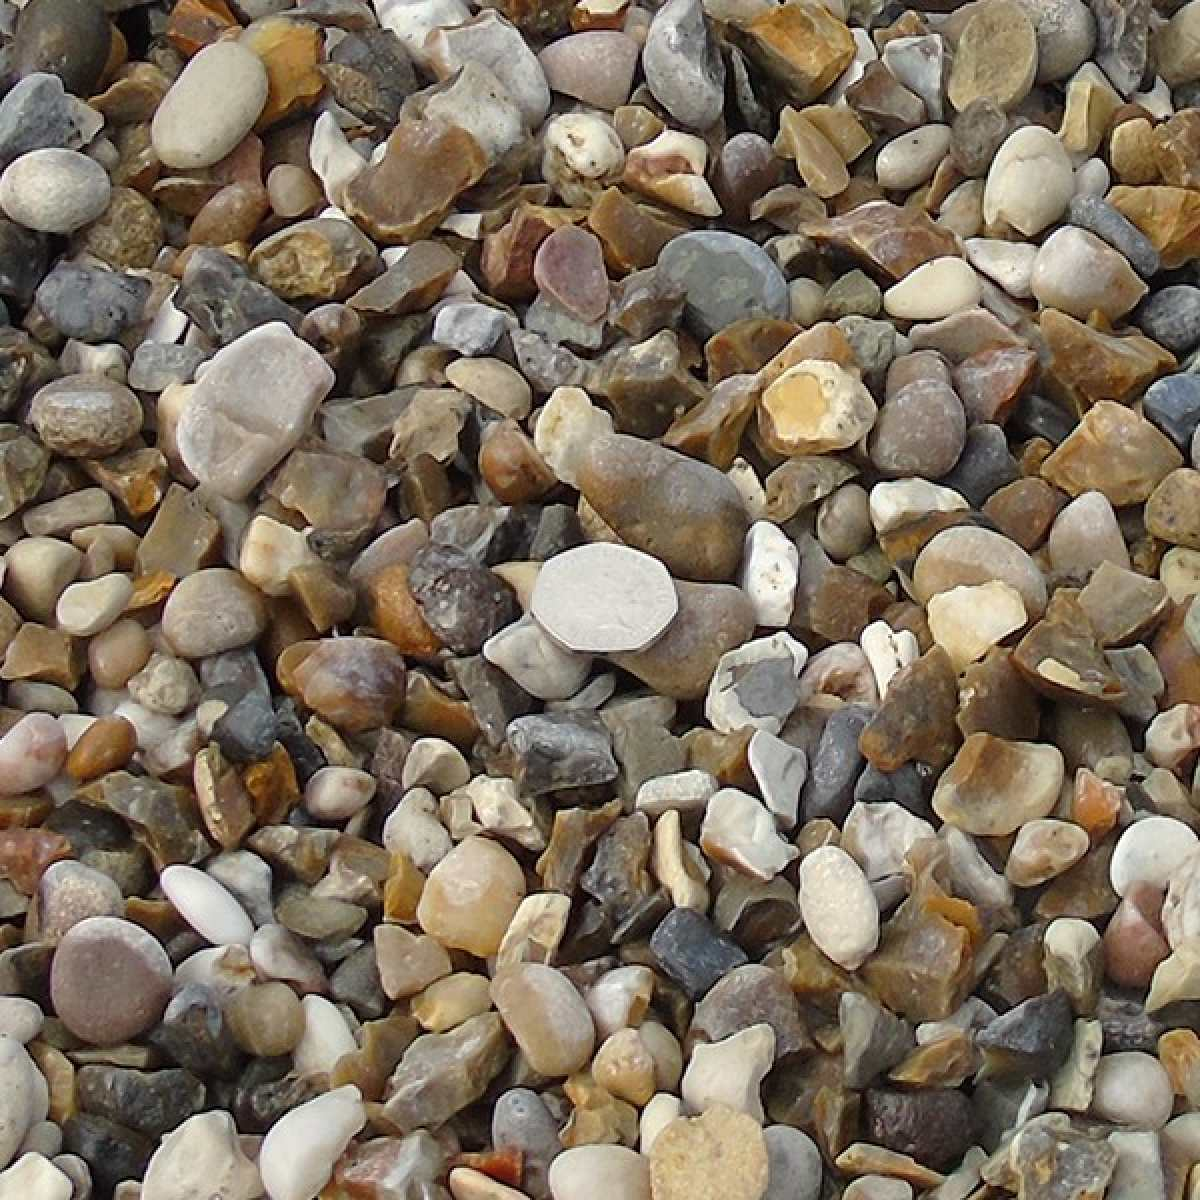 20mm quartz gravel wet Image by Websters Timber